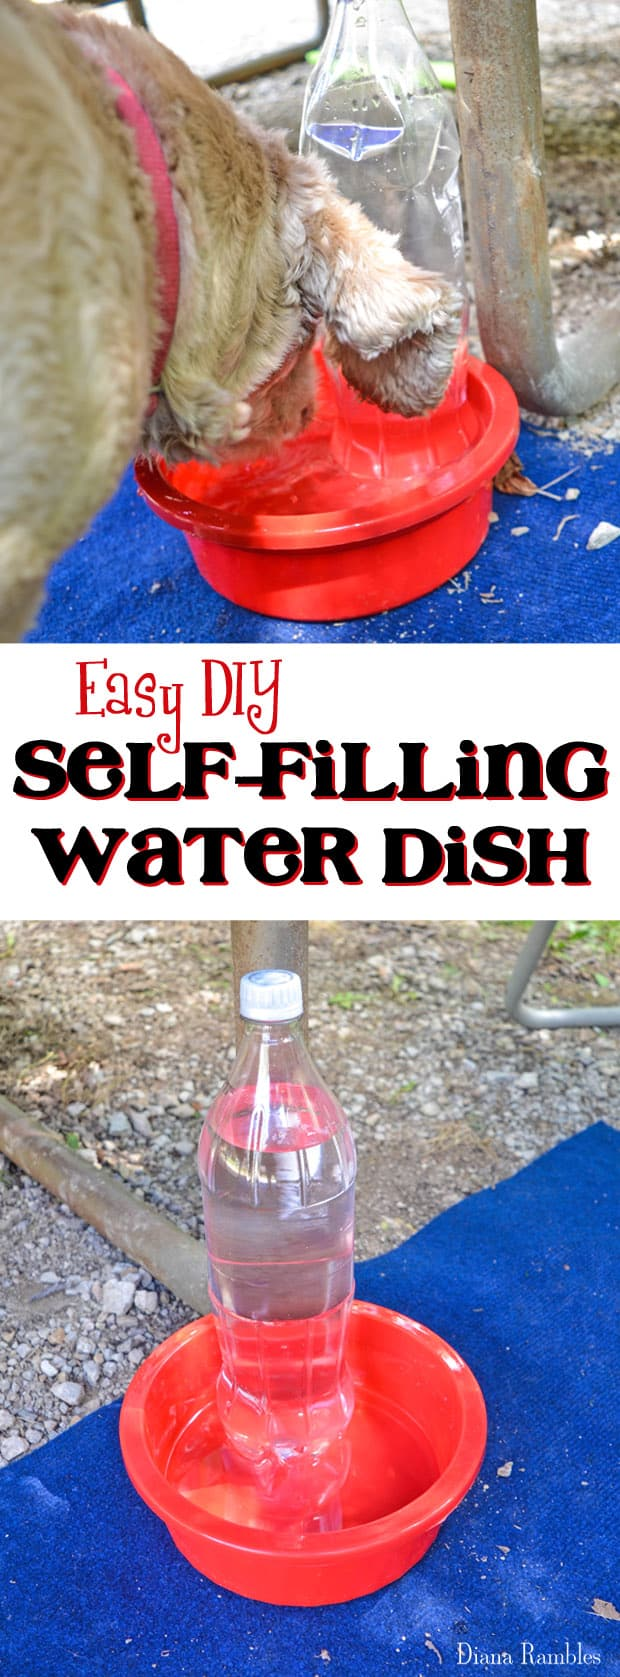 DIY Self Filling Water Dish for Your Pet - How to make an automatic dog or cat water dispenser. Keep dog cool with this dog dish.